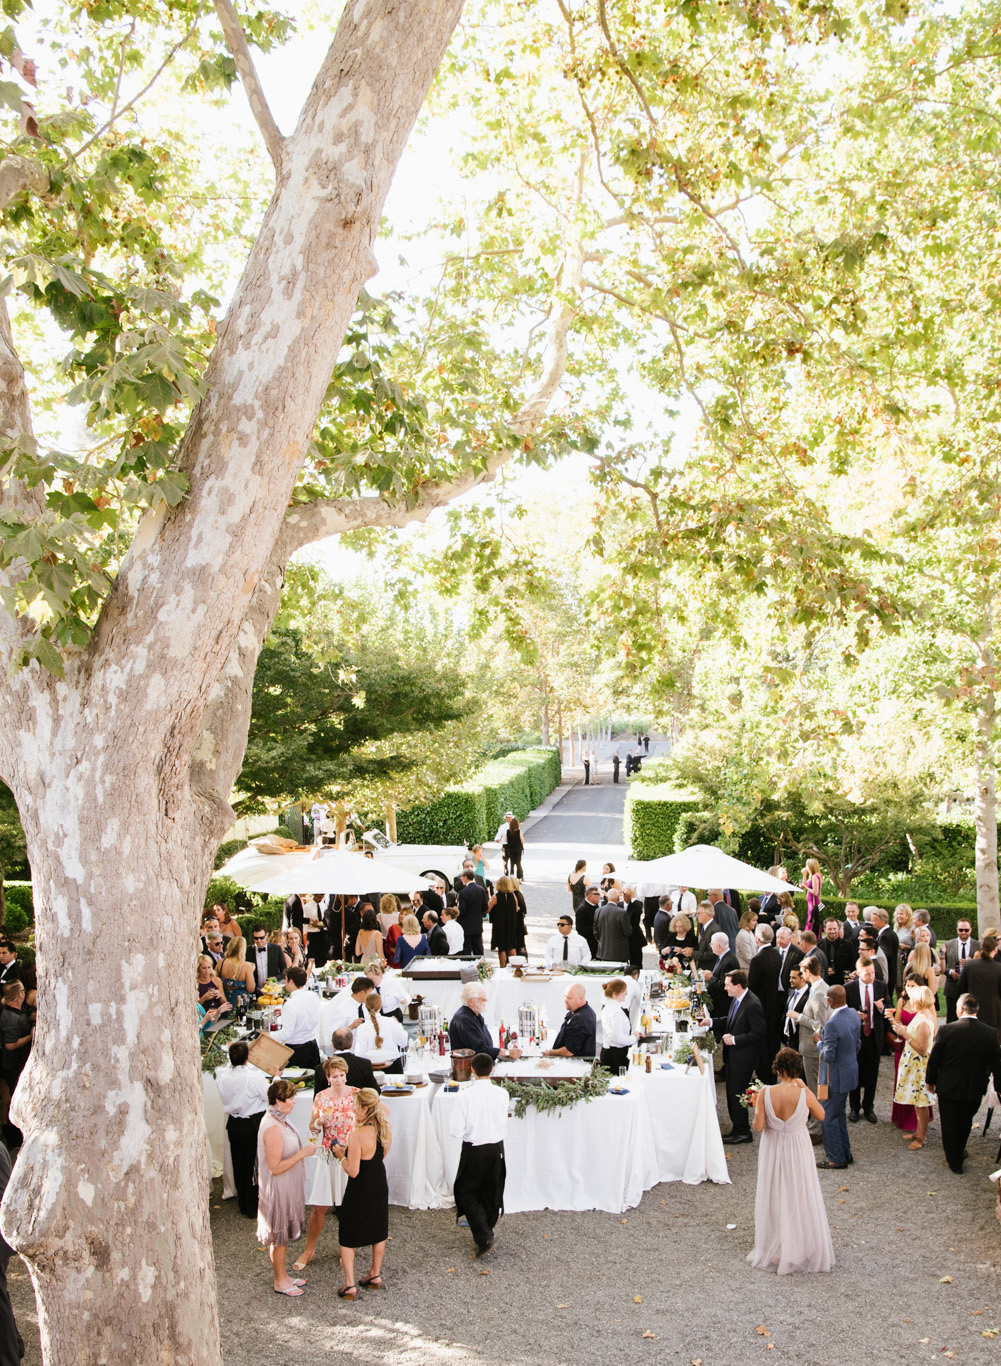 Guests mingle over cocktails after a wedding ceremony at Beaulieu Gardens in St. Helena wine country; Sylvie Gil Photography